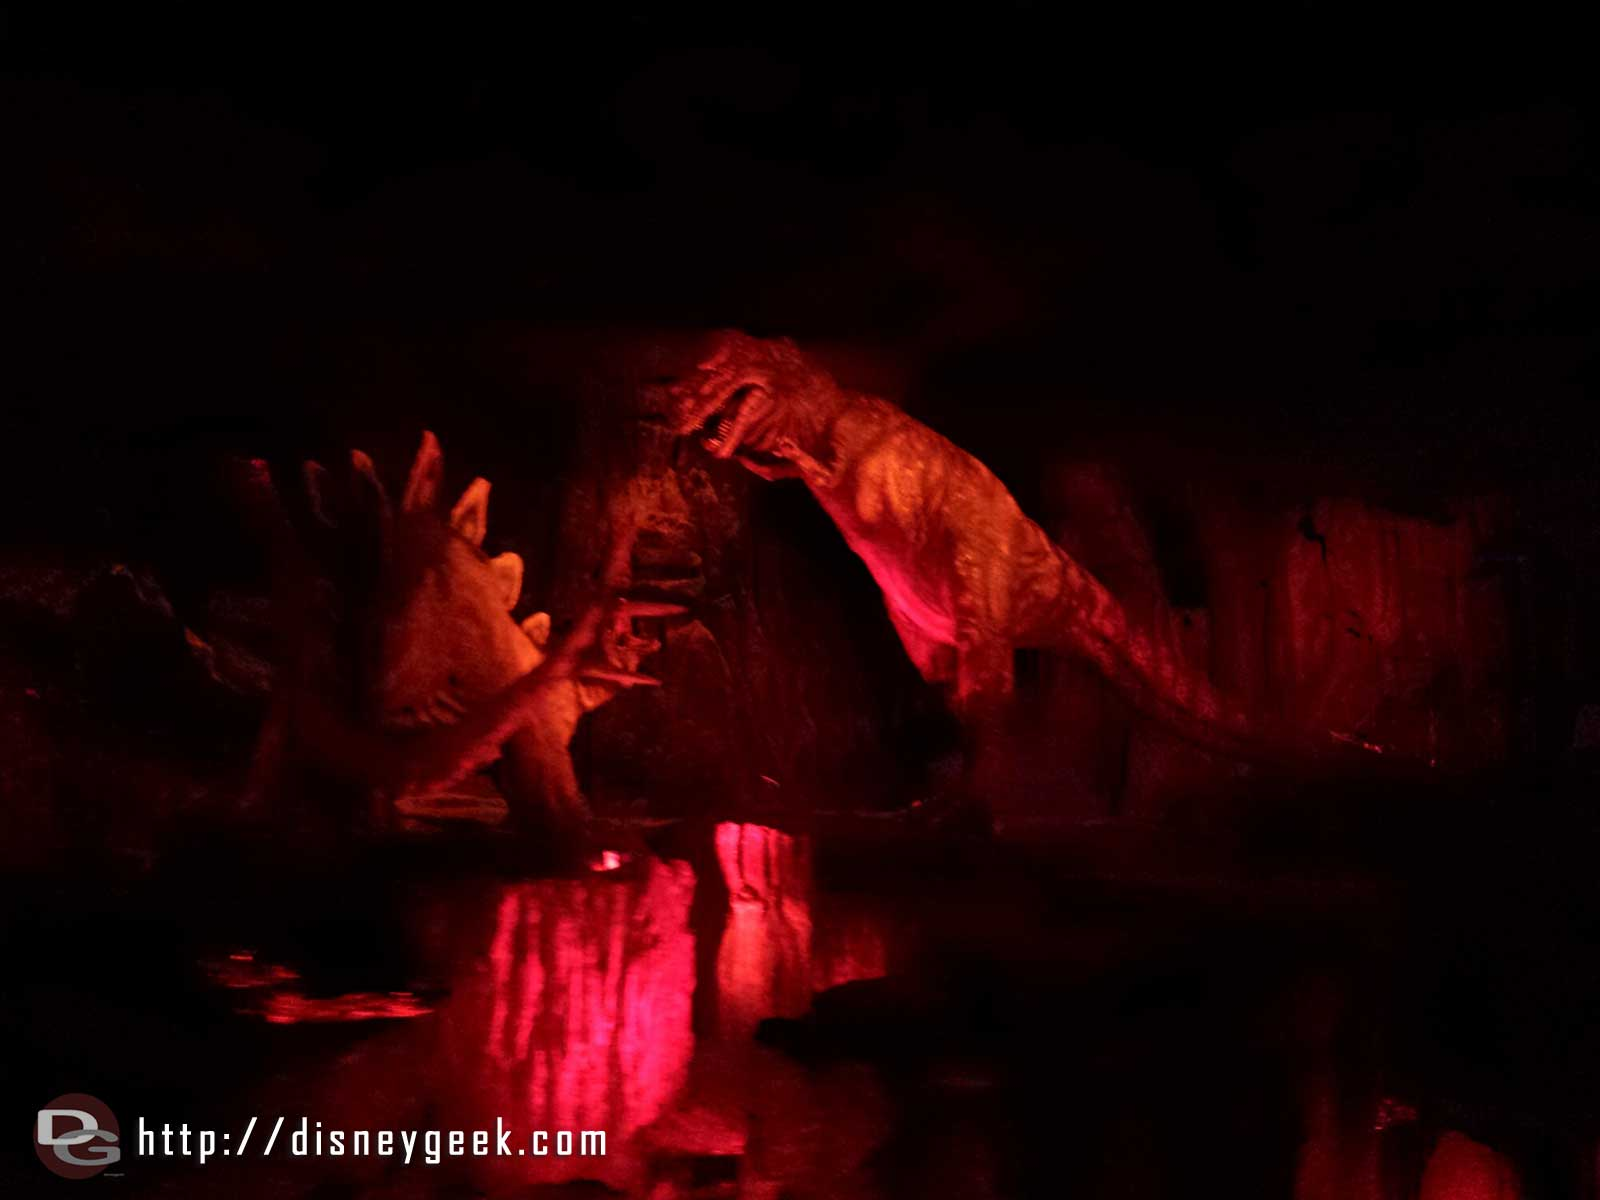 Primeval World Diorama from the Disneyland Railroad